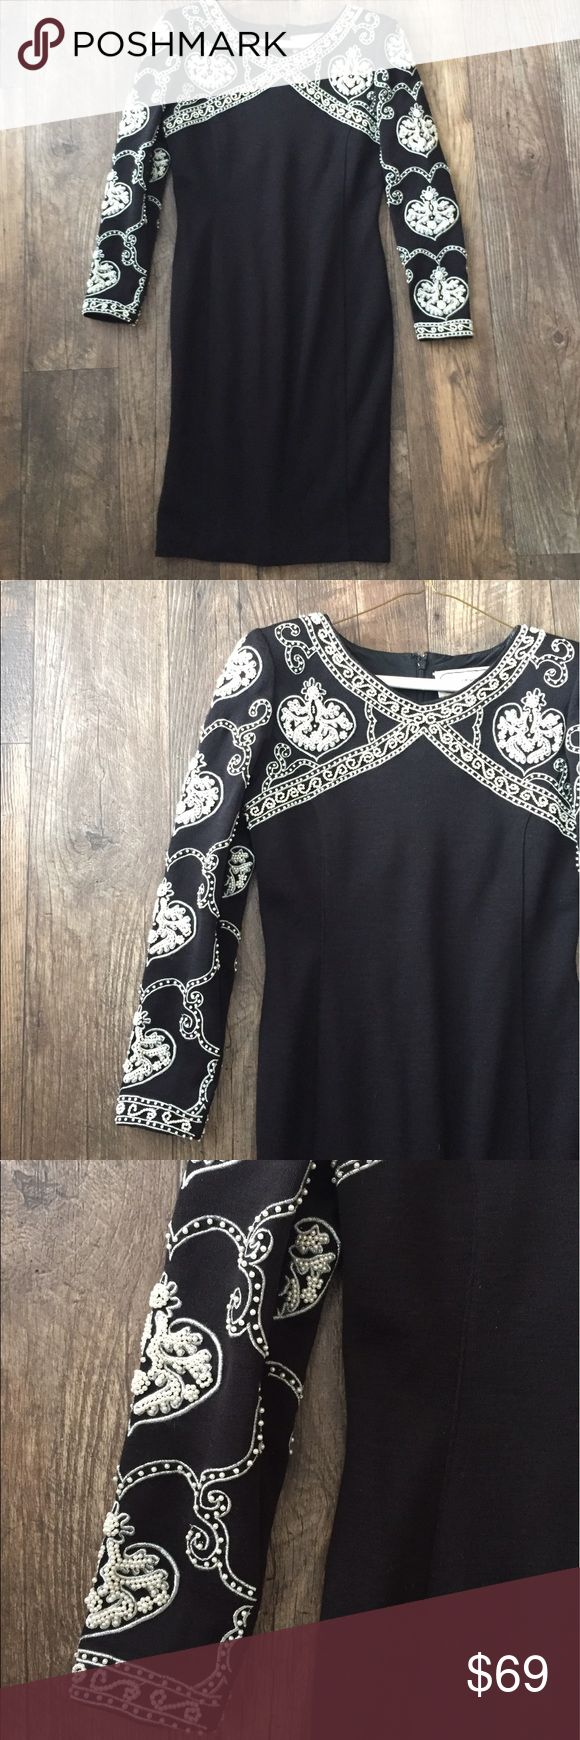 Vintage Adrienne Vittadini Beaded Petite Dress • Vintage garment is 52% wool, 48% acrylic. Lining is 100% nylon. • Fully lined. • Some loose threads, pictured. • Sewn-in shoulder pads. • Please look at pictures for an approximate for bust & length measurements. Adrienne Vittadini Dresses Long Sleeve